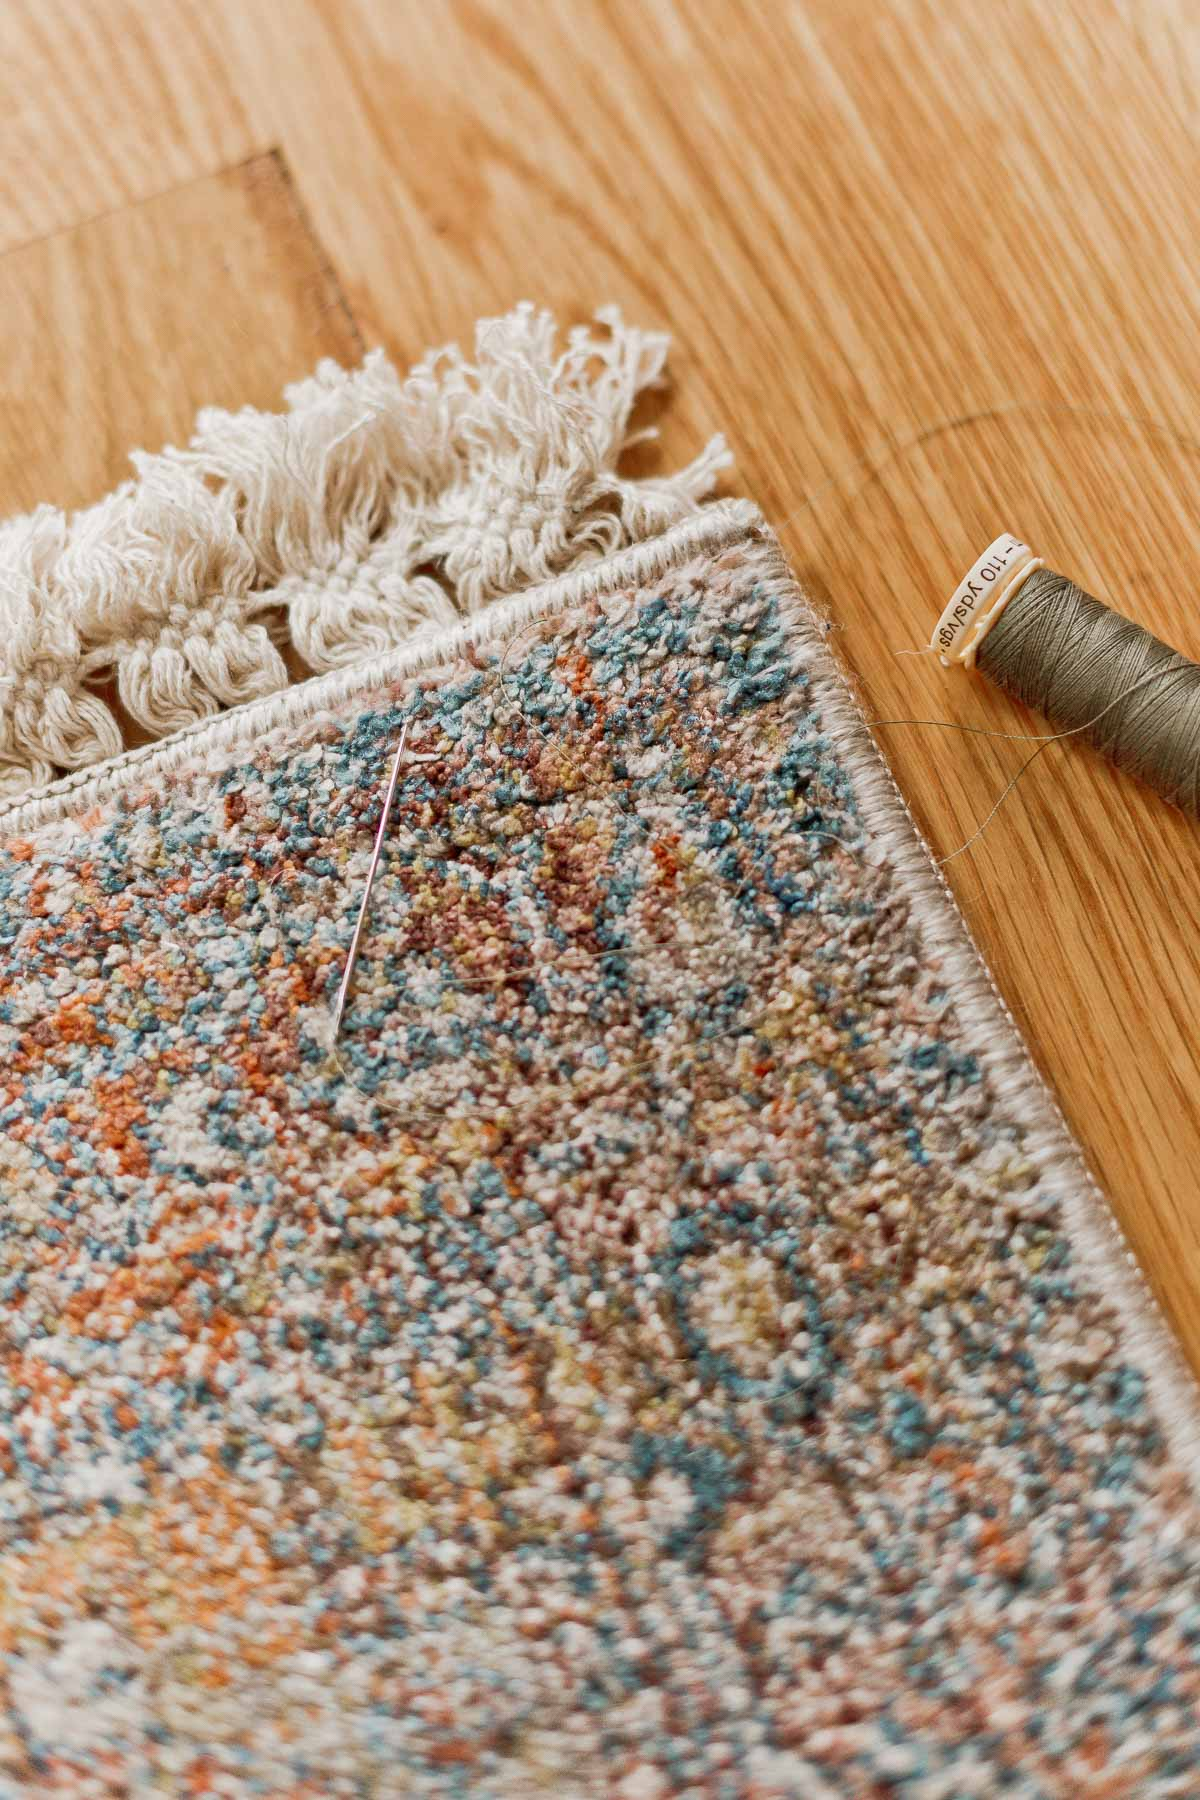 DIY Rug Hack: How to Upgrade an Inexpensive Rug for $10 (in under 10 Minutes) #diy #diyrug #rug #homedecor #diydecor #sewing